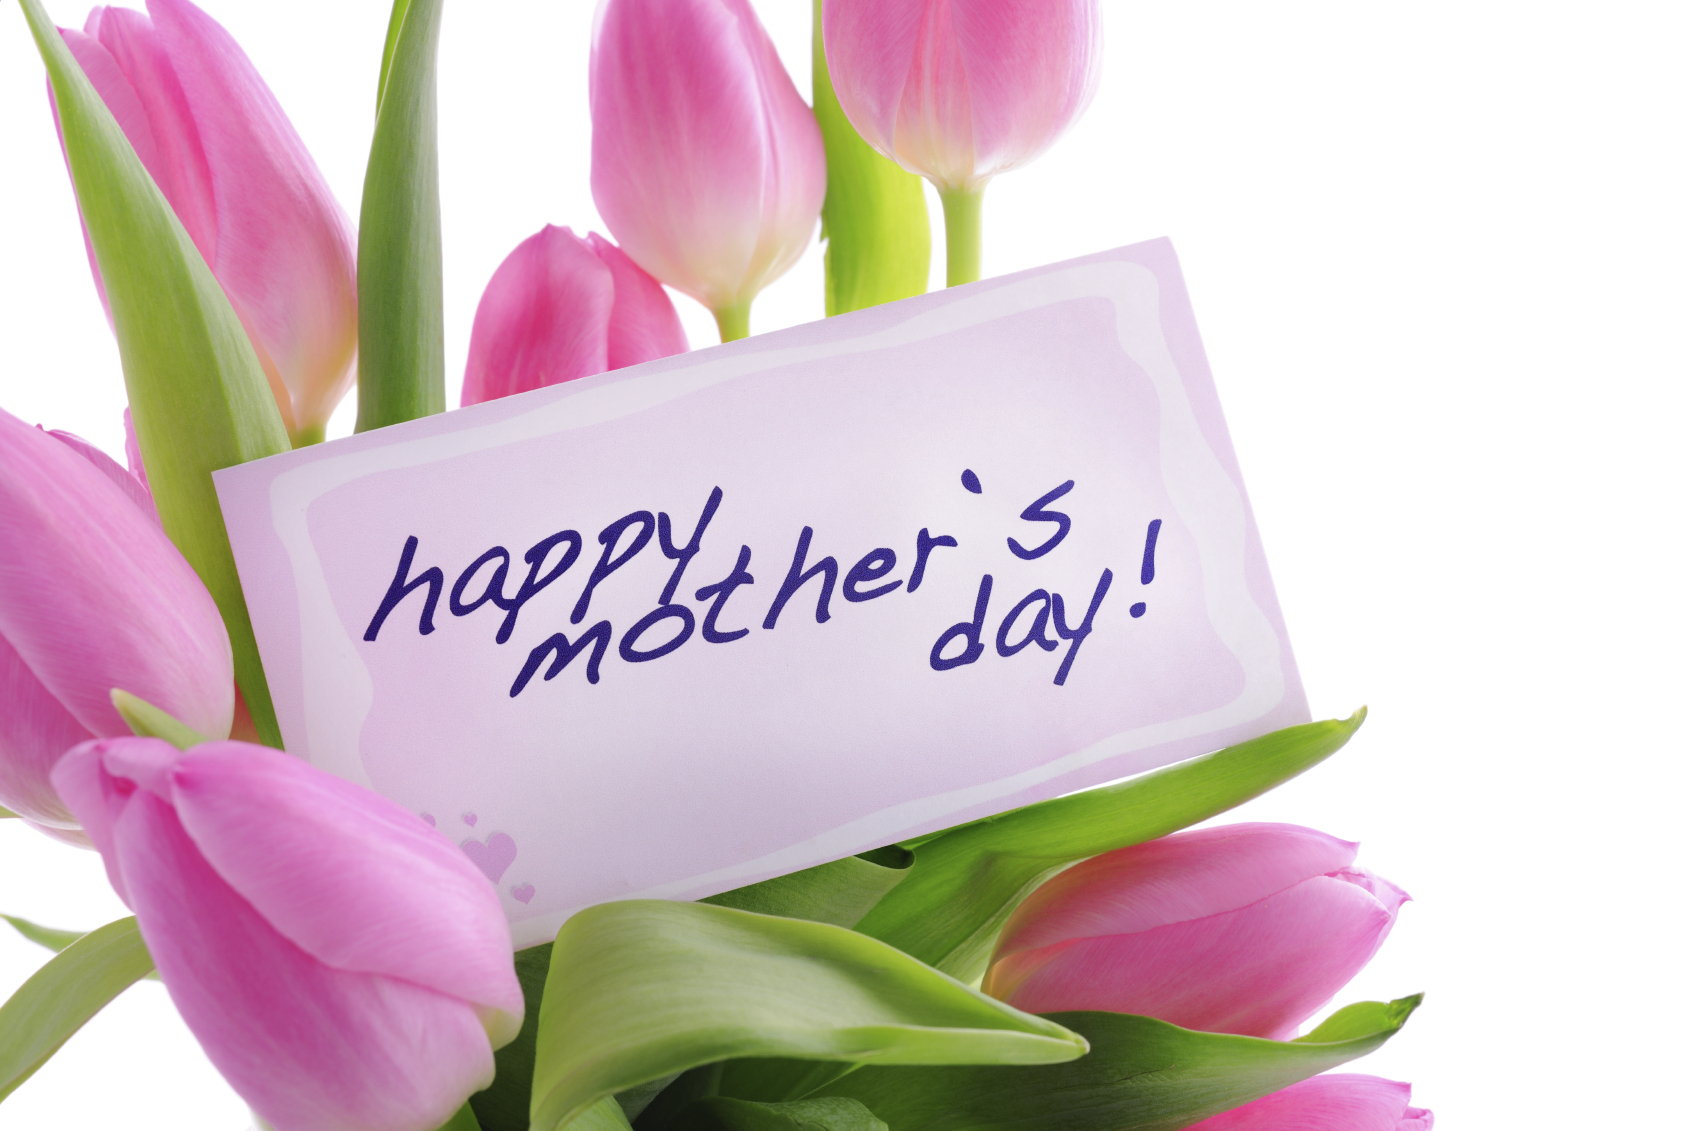 Happy Mothers Day Sister Quotes - Bestmessages